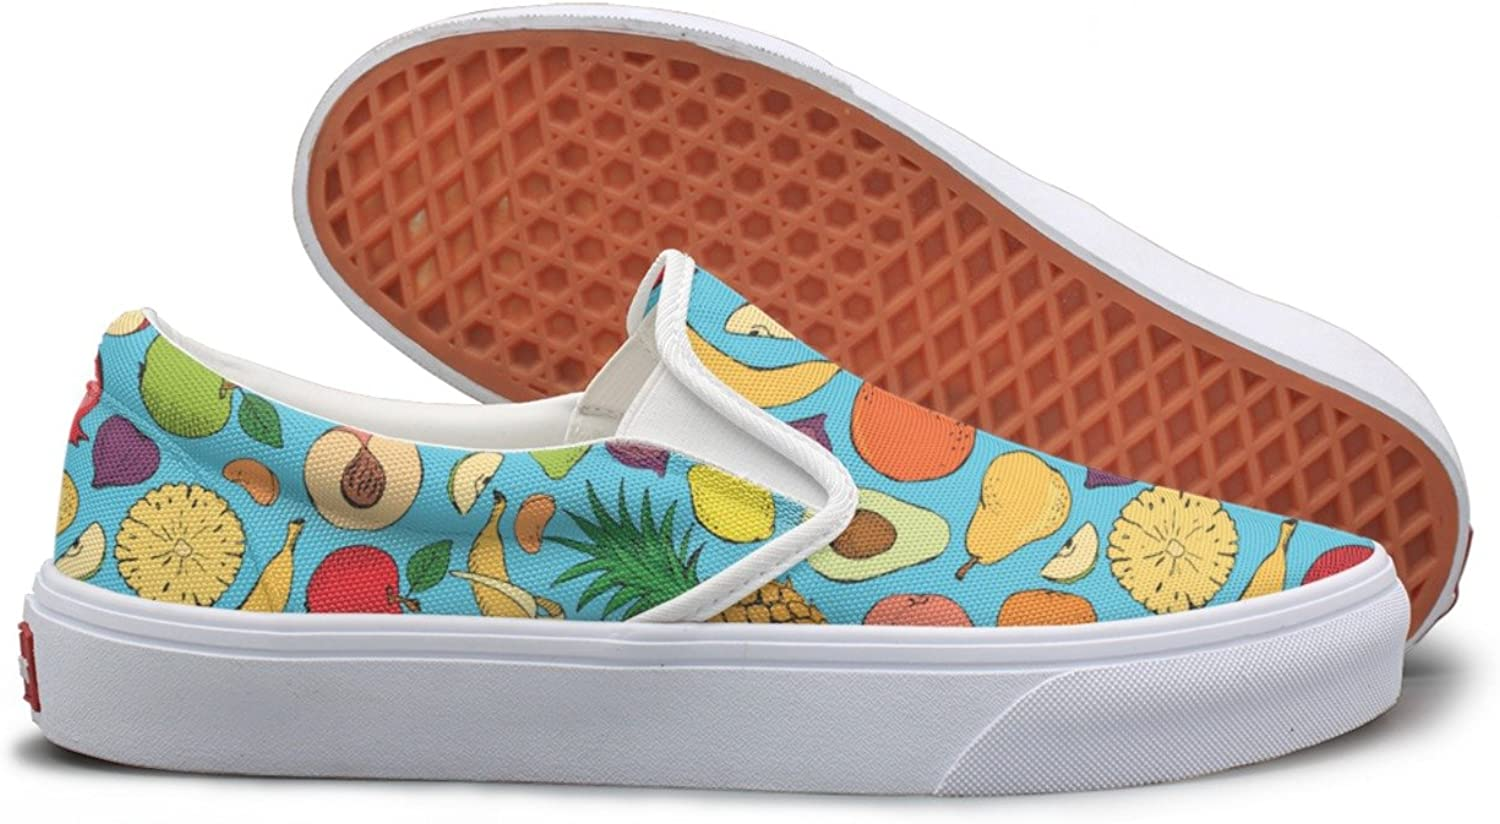 Lalige colord Fruits Doodle Pineapple Avocado Women Cute Canvas Slip-ons Walking shoes